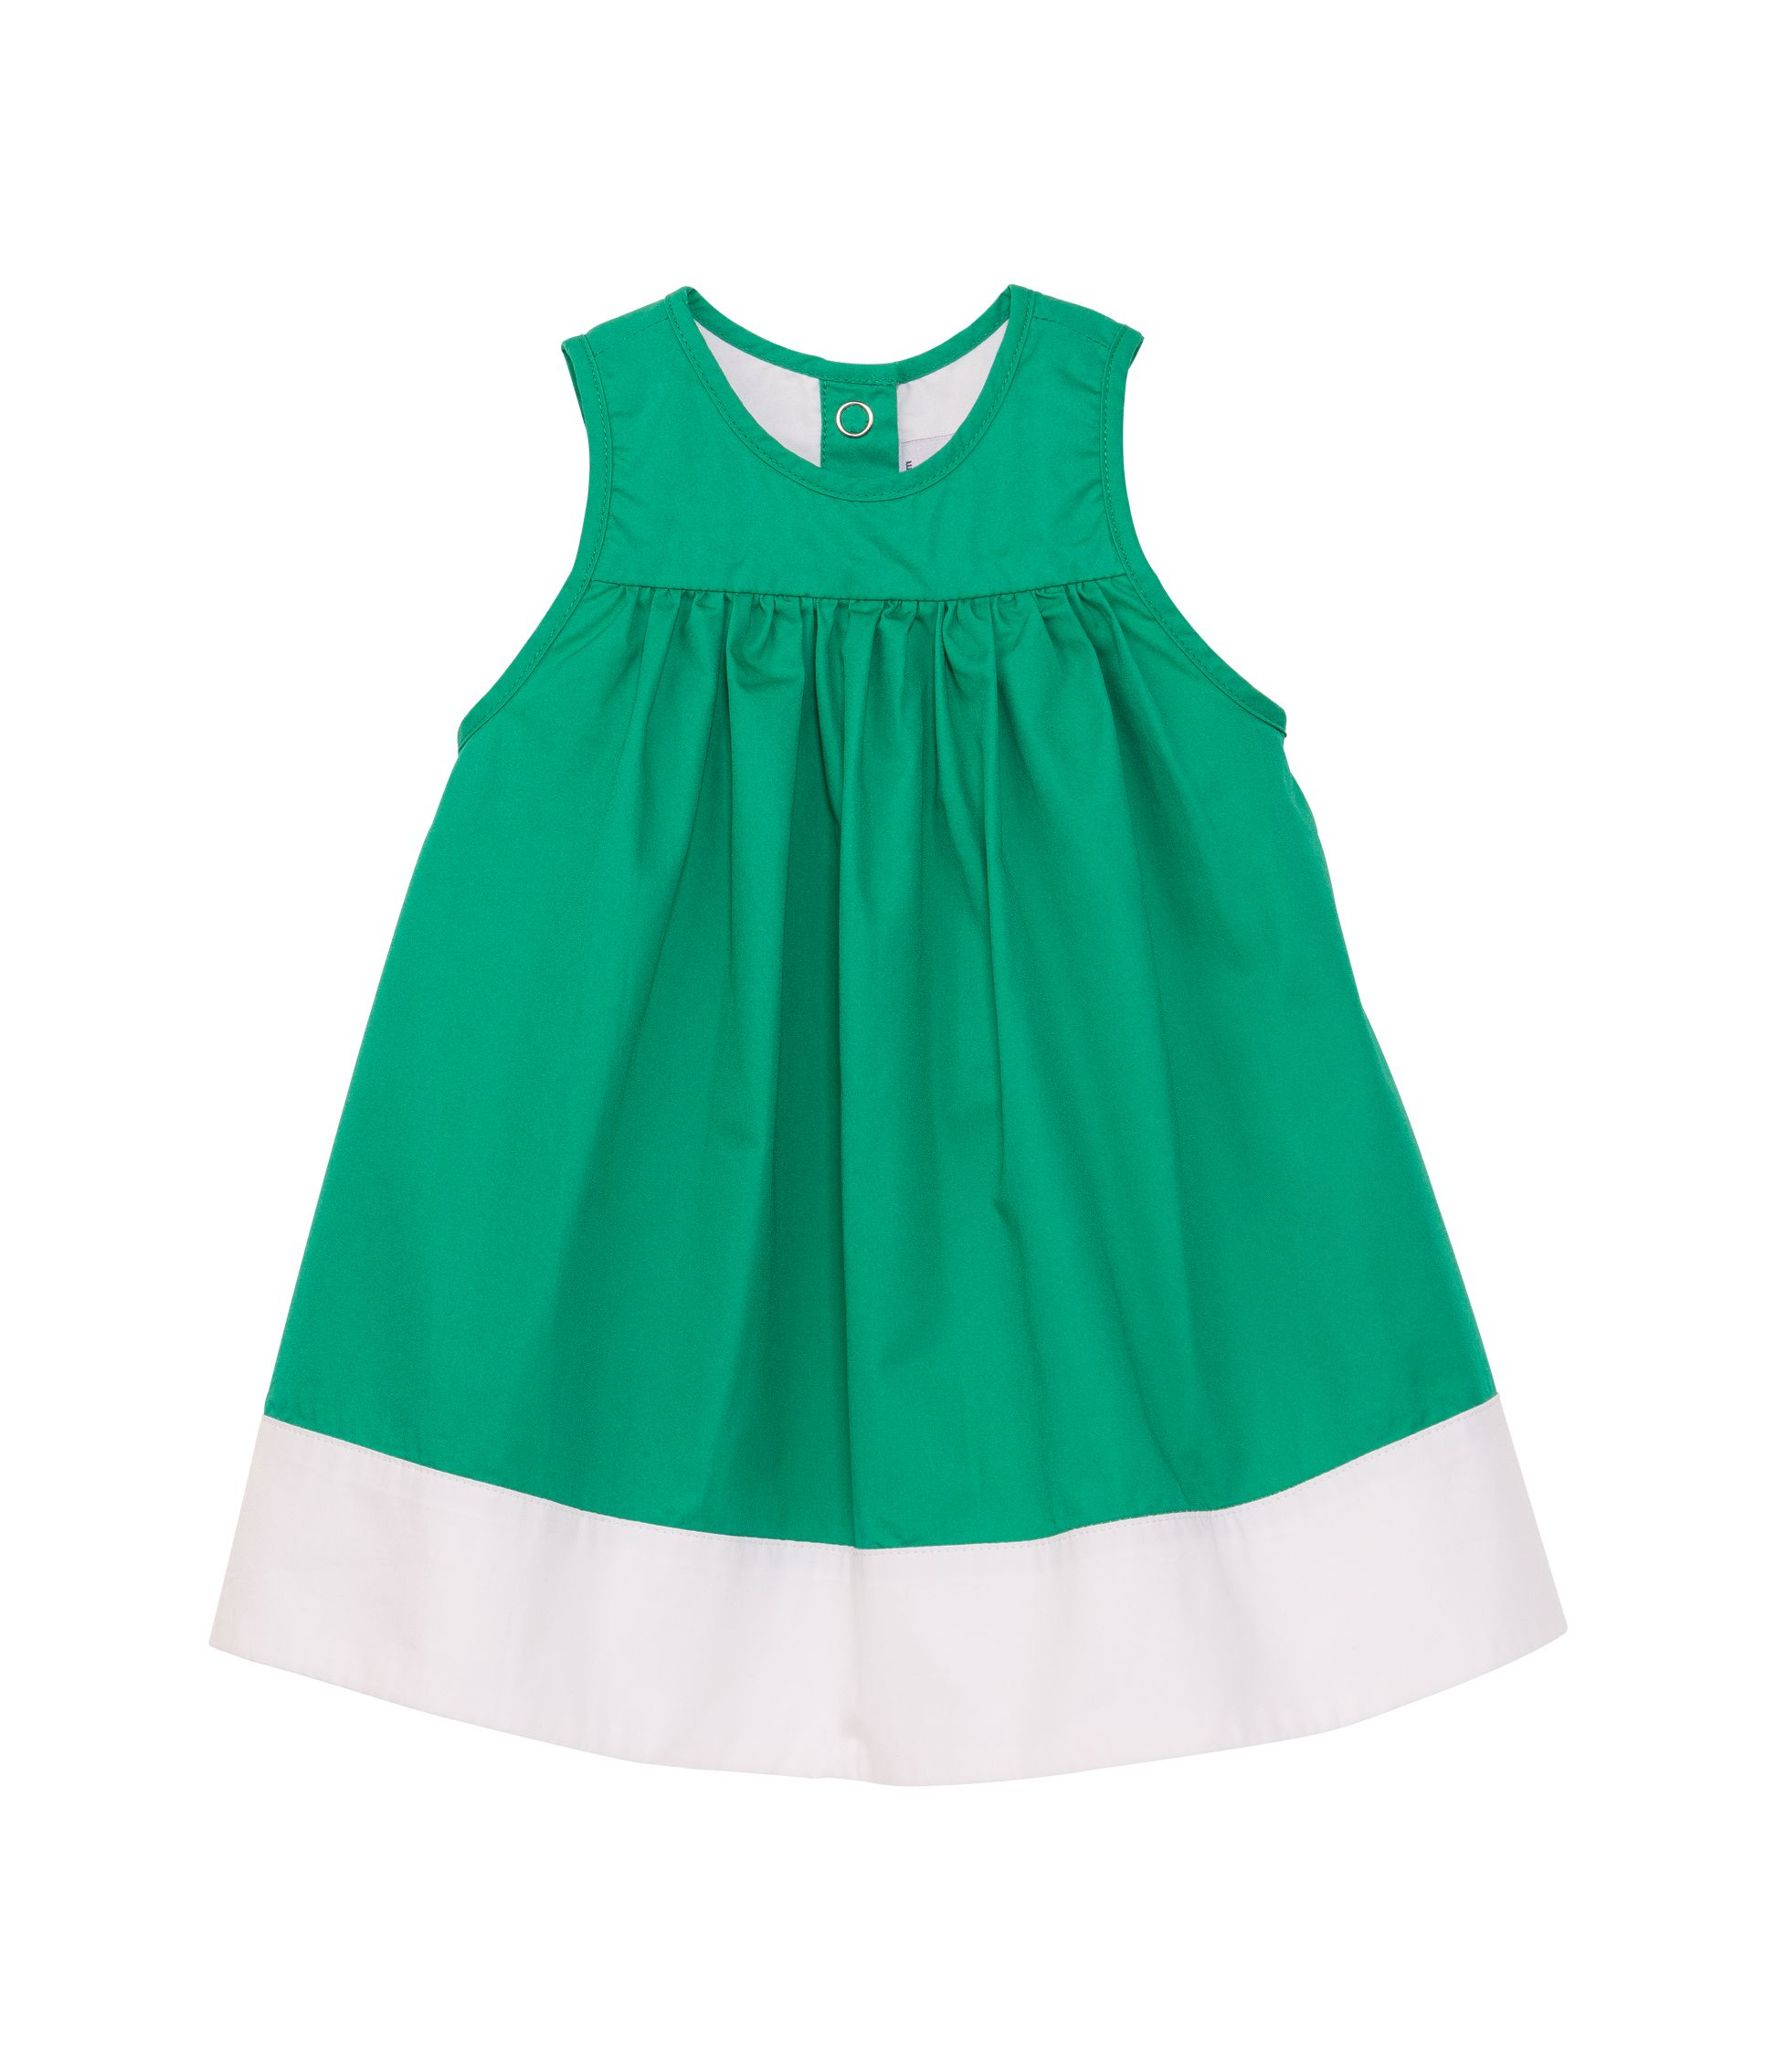 Baby girls sleeveless dress